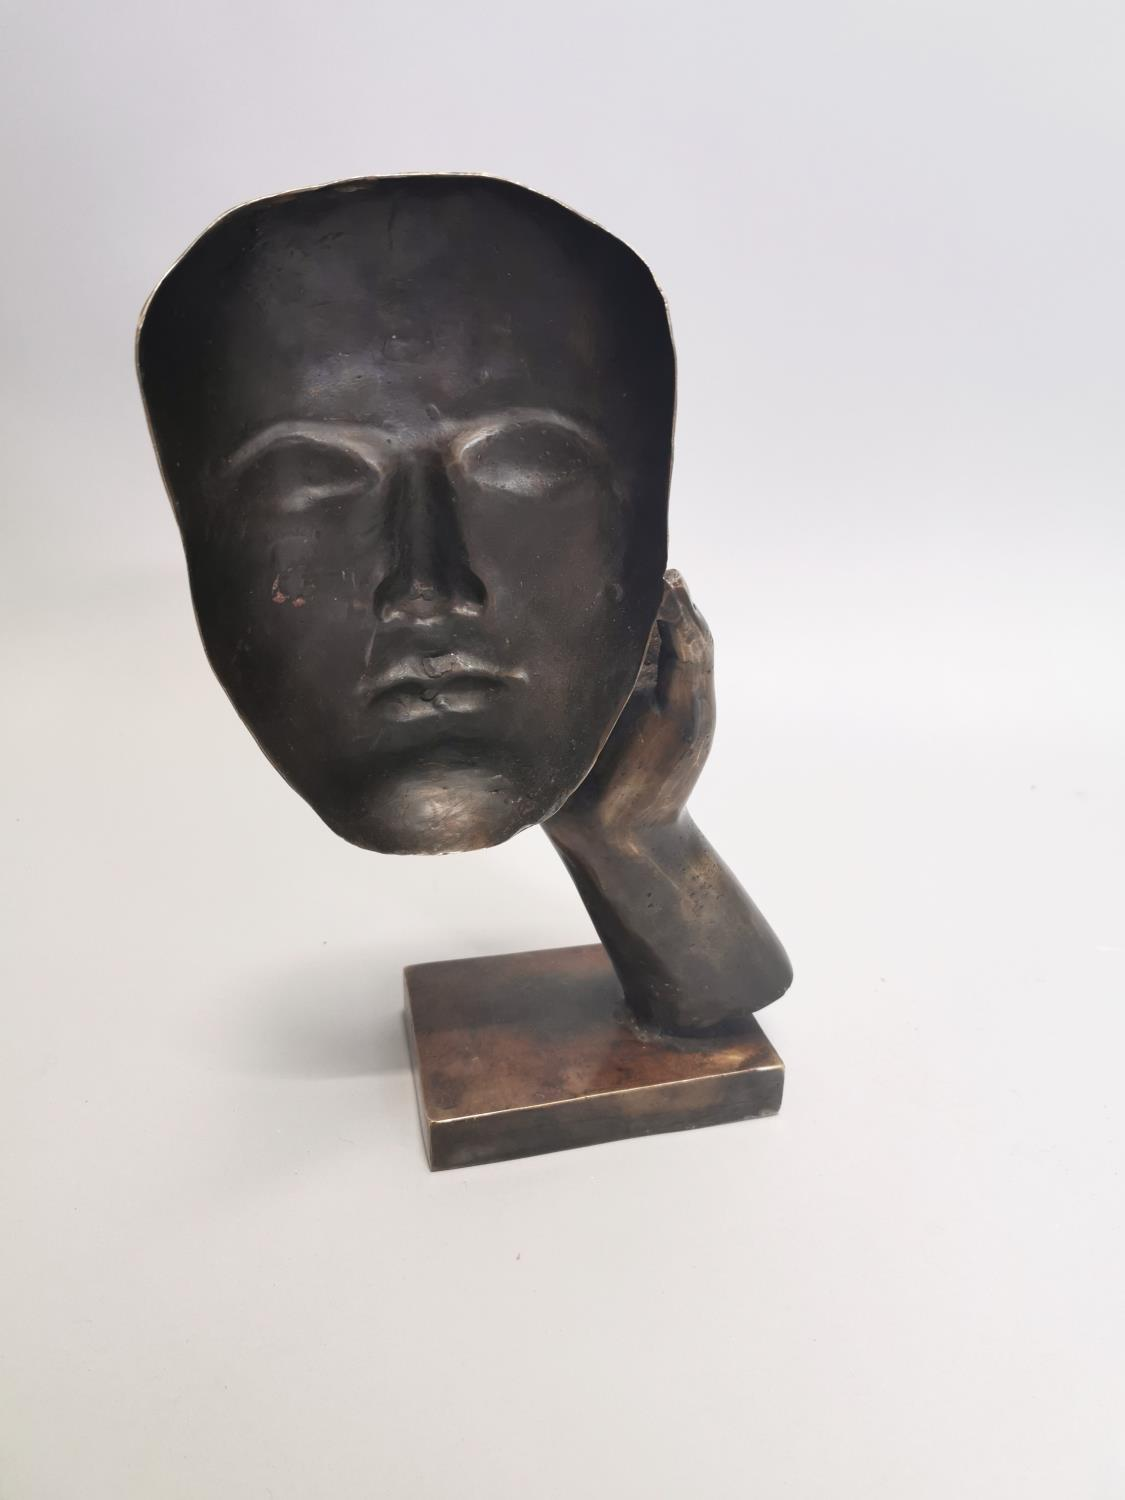 Bronze model of a hand and mask - Image 7 of 7